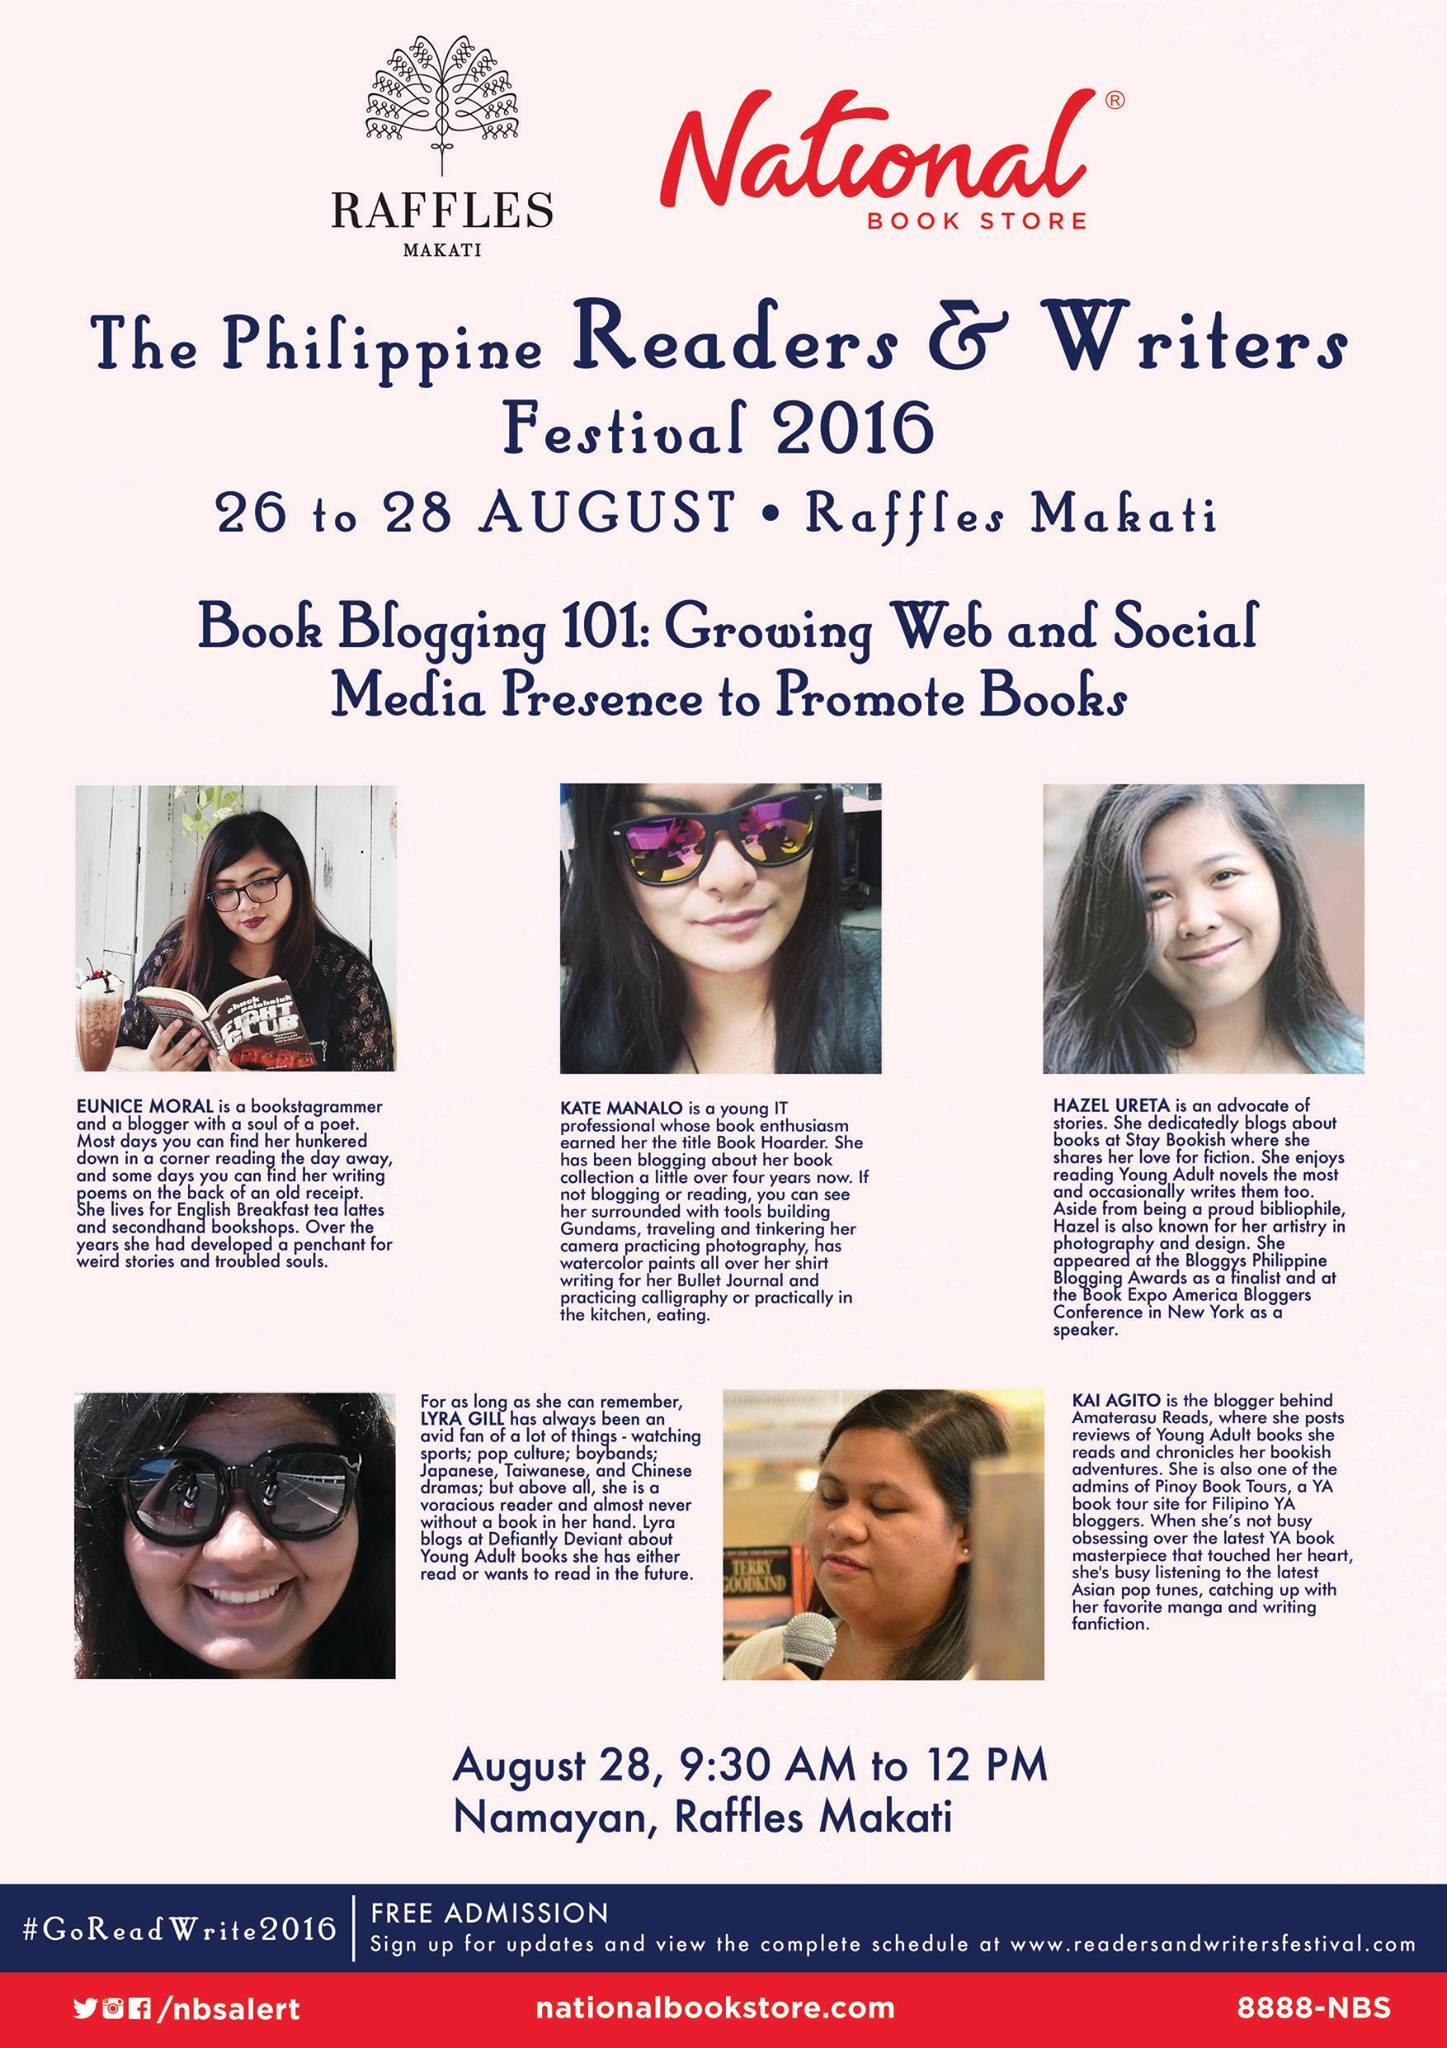 The Philippine Readers and Writers Festival - Book Blogging Panel